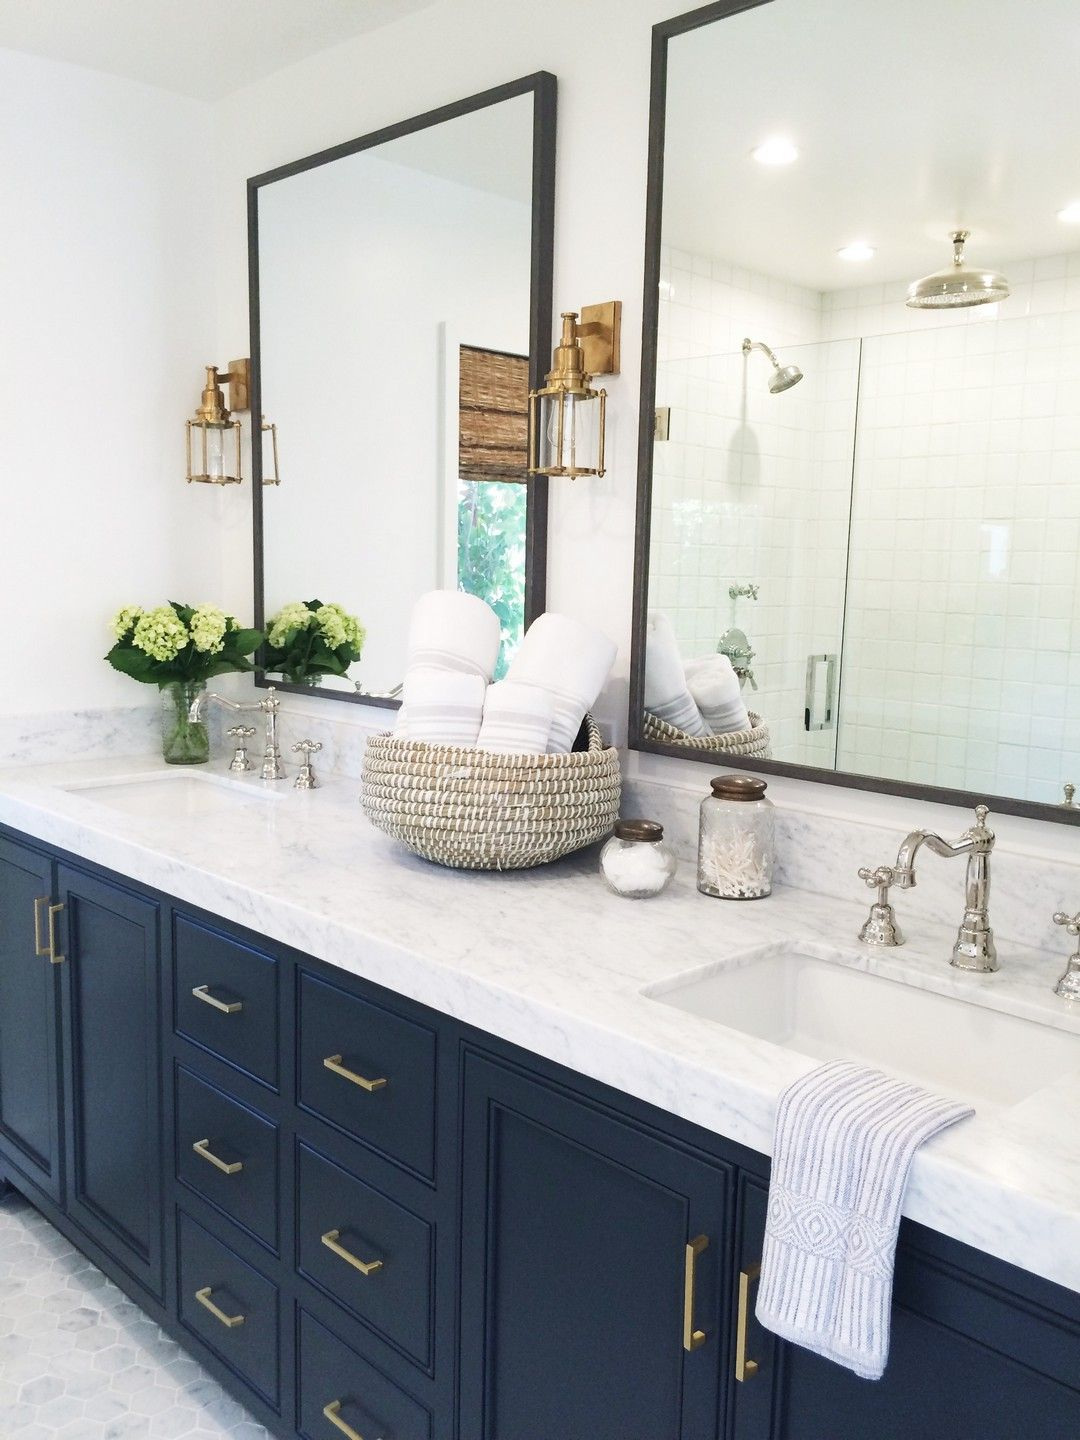 Superbe 54 Gorgeous Farmhouse Master Bathroom Decorating Ideas  Https://www.onechitecture.com/2017/10/22/54 Gorgeous Farmhouse Master  Bathroom Decorating Ideas/